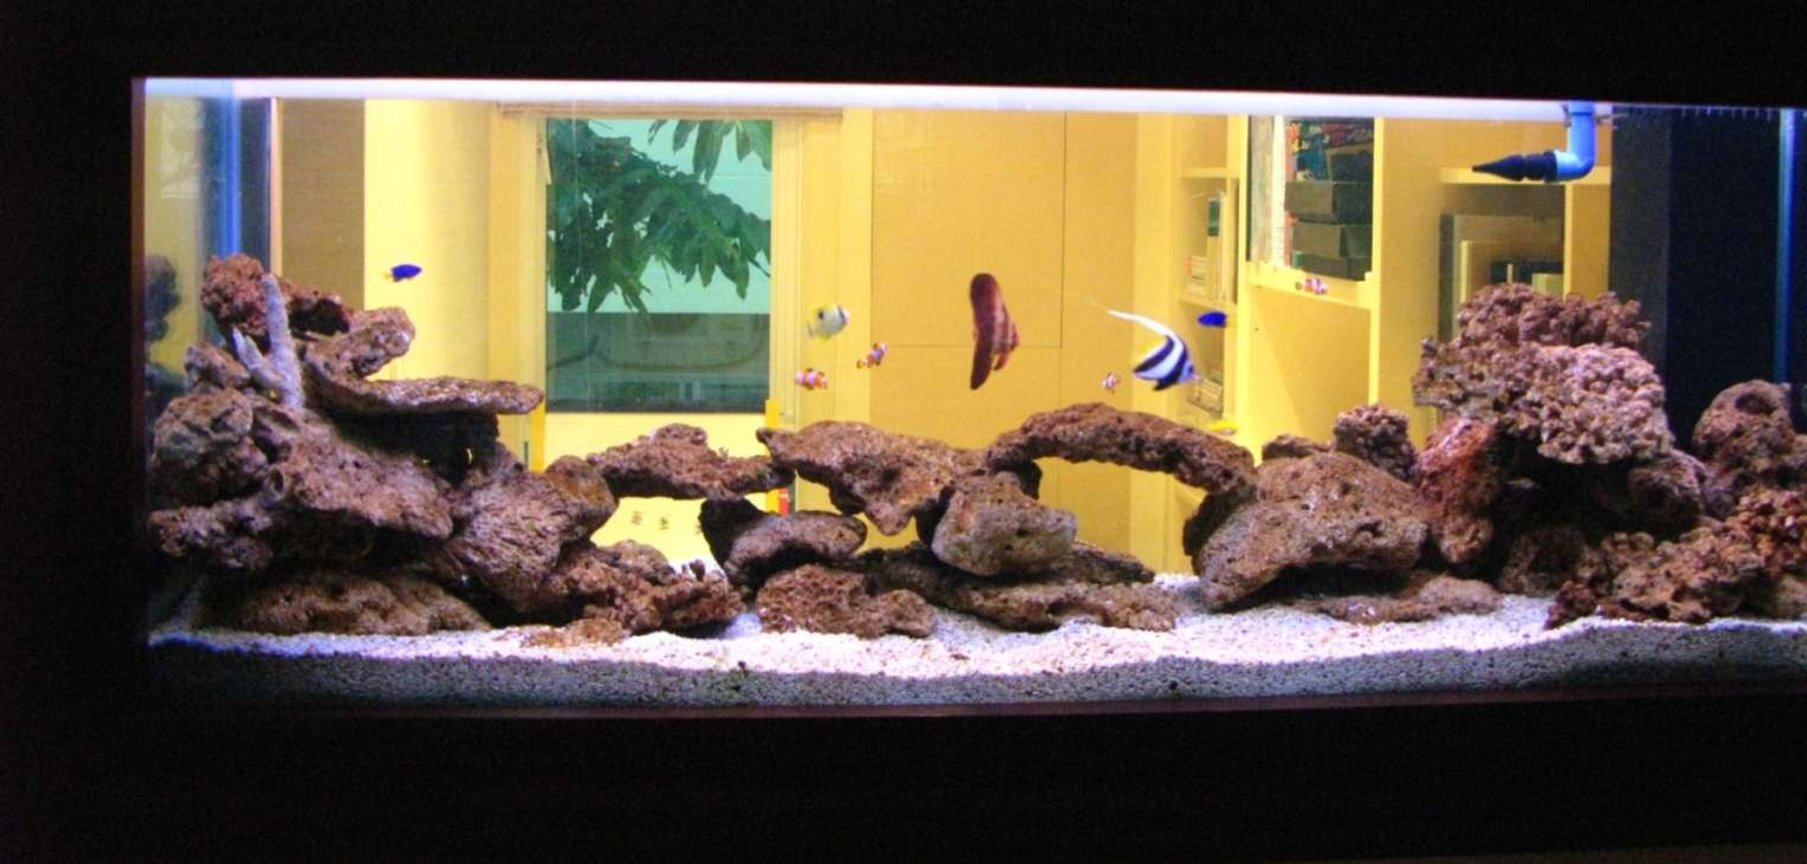 150 gallons saltwater fish tank (mostly fish, little/no live coral) - 4 Months Earlier: Saltwater Fish Tank with Coral Rock: 1 x Batfish, 4 x Clown Fish, 2 x Blue Damsel, 1 x Moon Wrasse, 1 x Tear Drop Butterfly, 1x MaroonClown Fish, 1x Heniochus Butterfly, 1 x Blue Hippo Tang, 1 x Lemon Damsel, 1 x Red Coris Wrasse, 1 x Copper Banded Butterfly, Yellow Belly Damsel